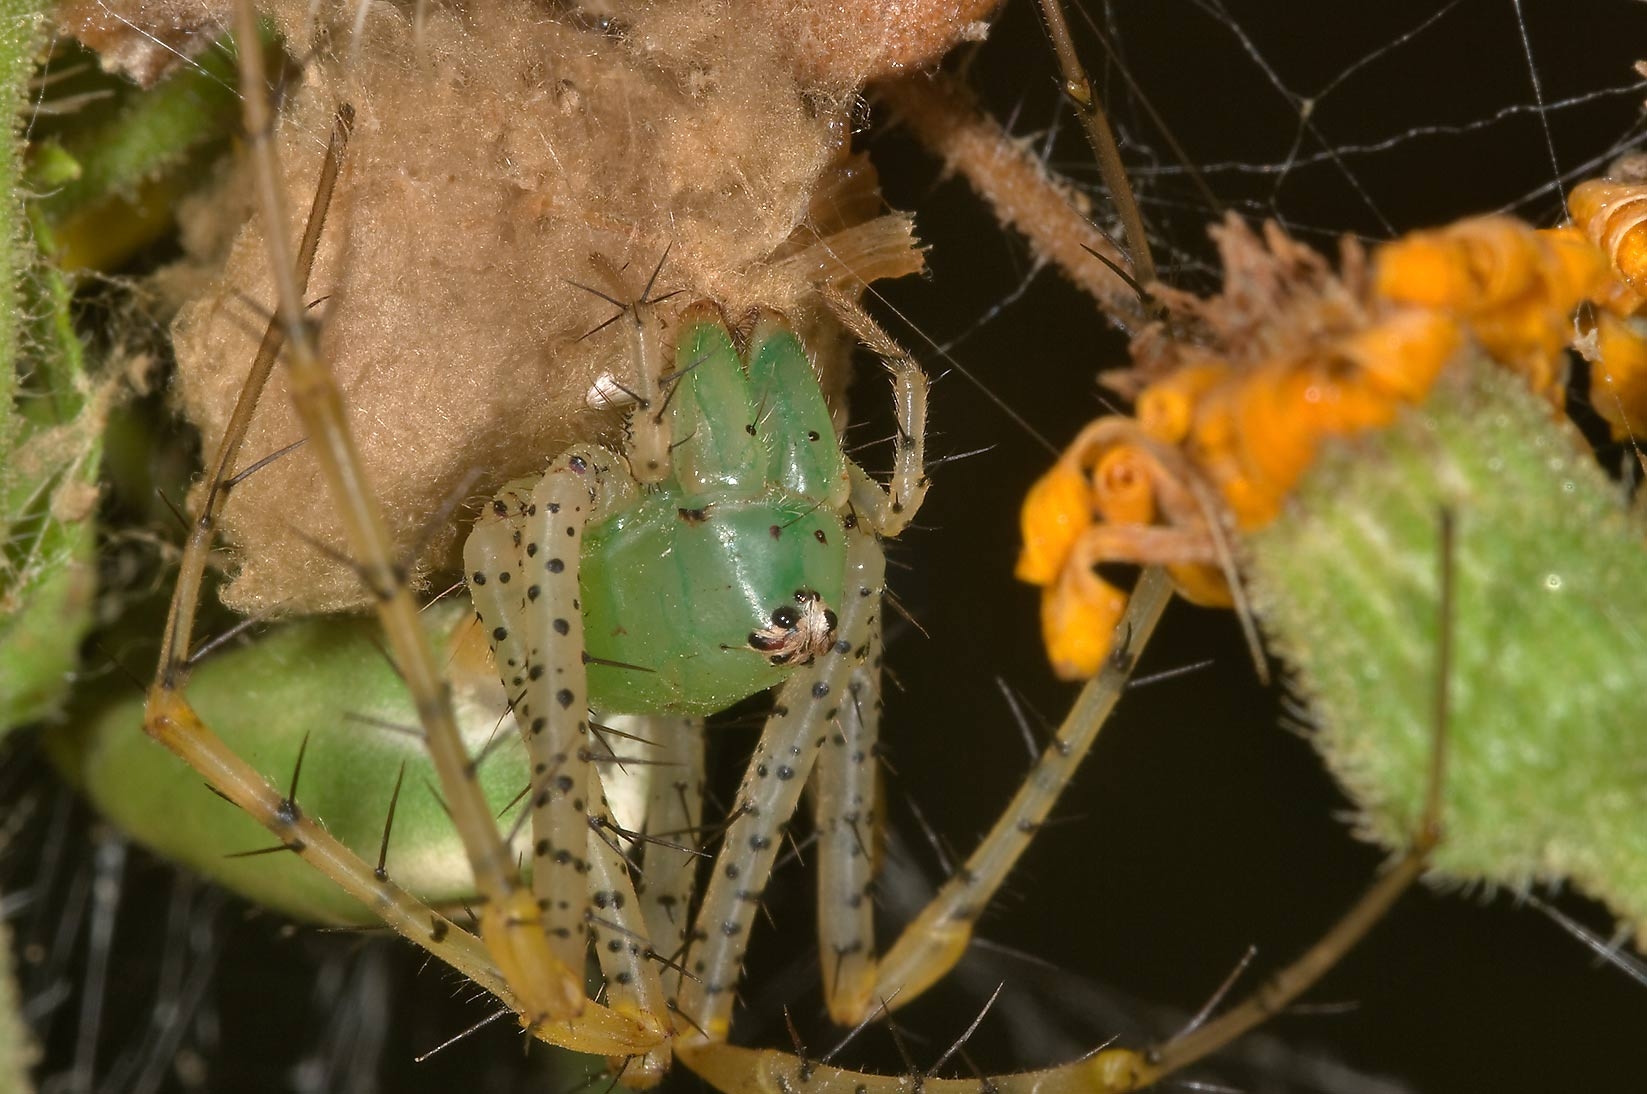 Green lynx spider with an egg sack in Lick Creek Park. College Station, Texas